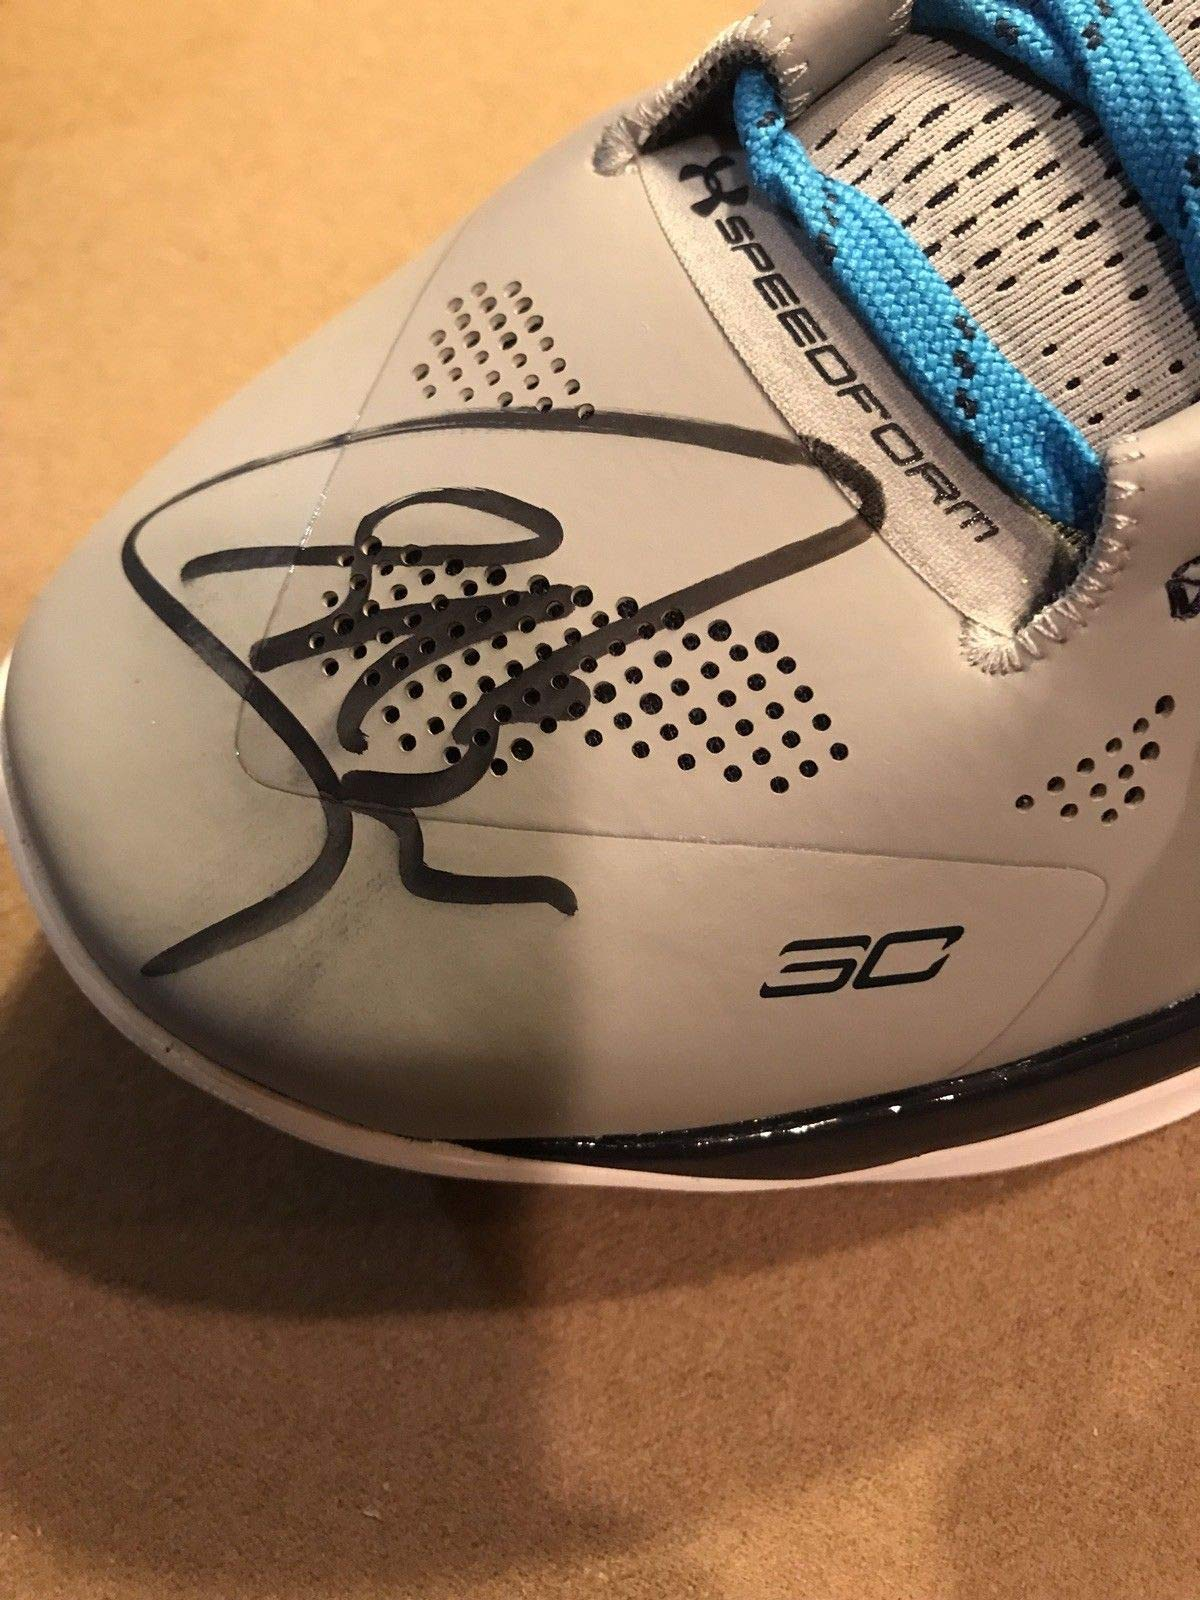 Steph Curry Autographed Signed Under Armour Curry Shoe PSA/DNA Warriors